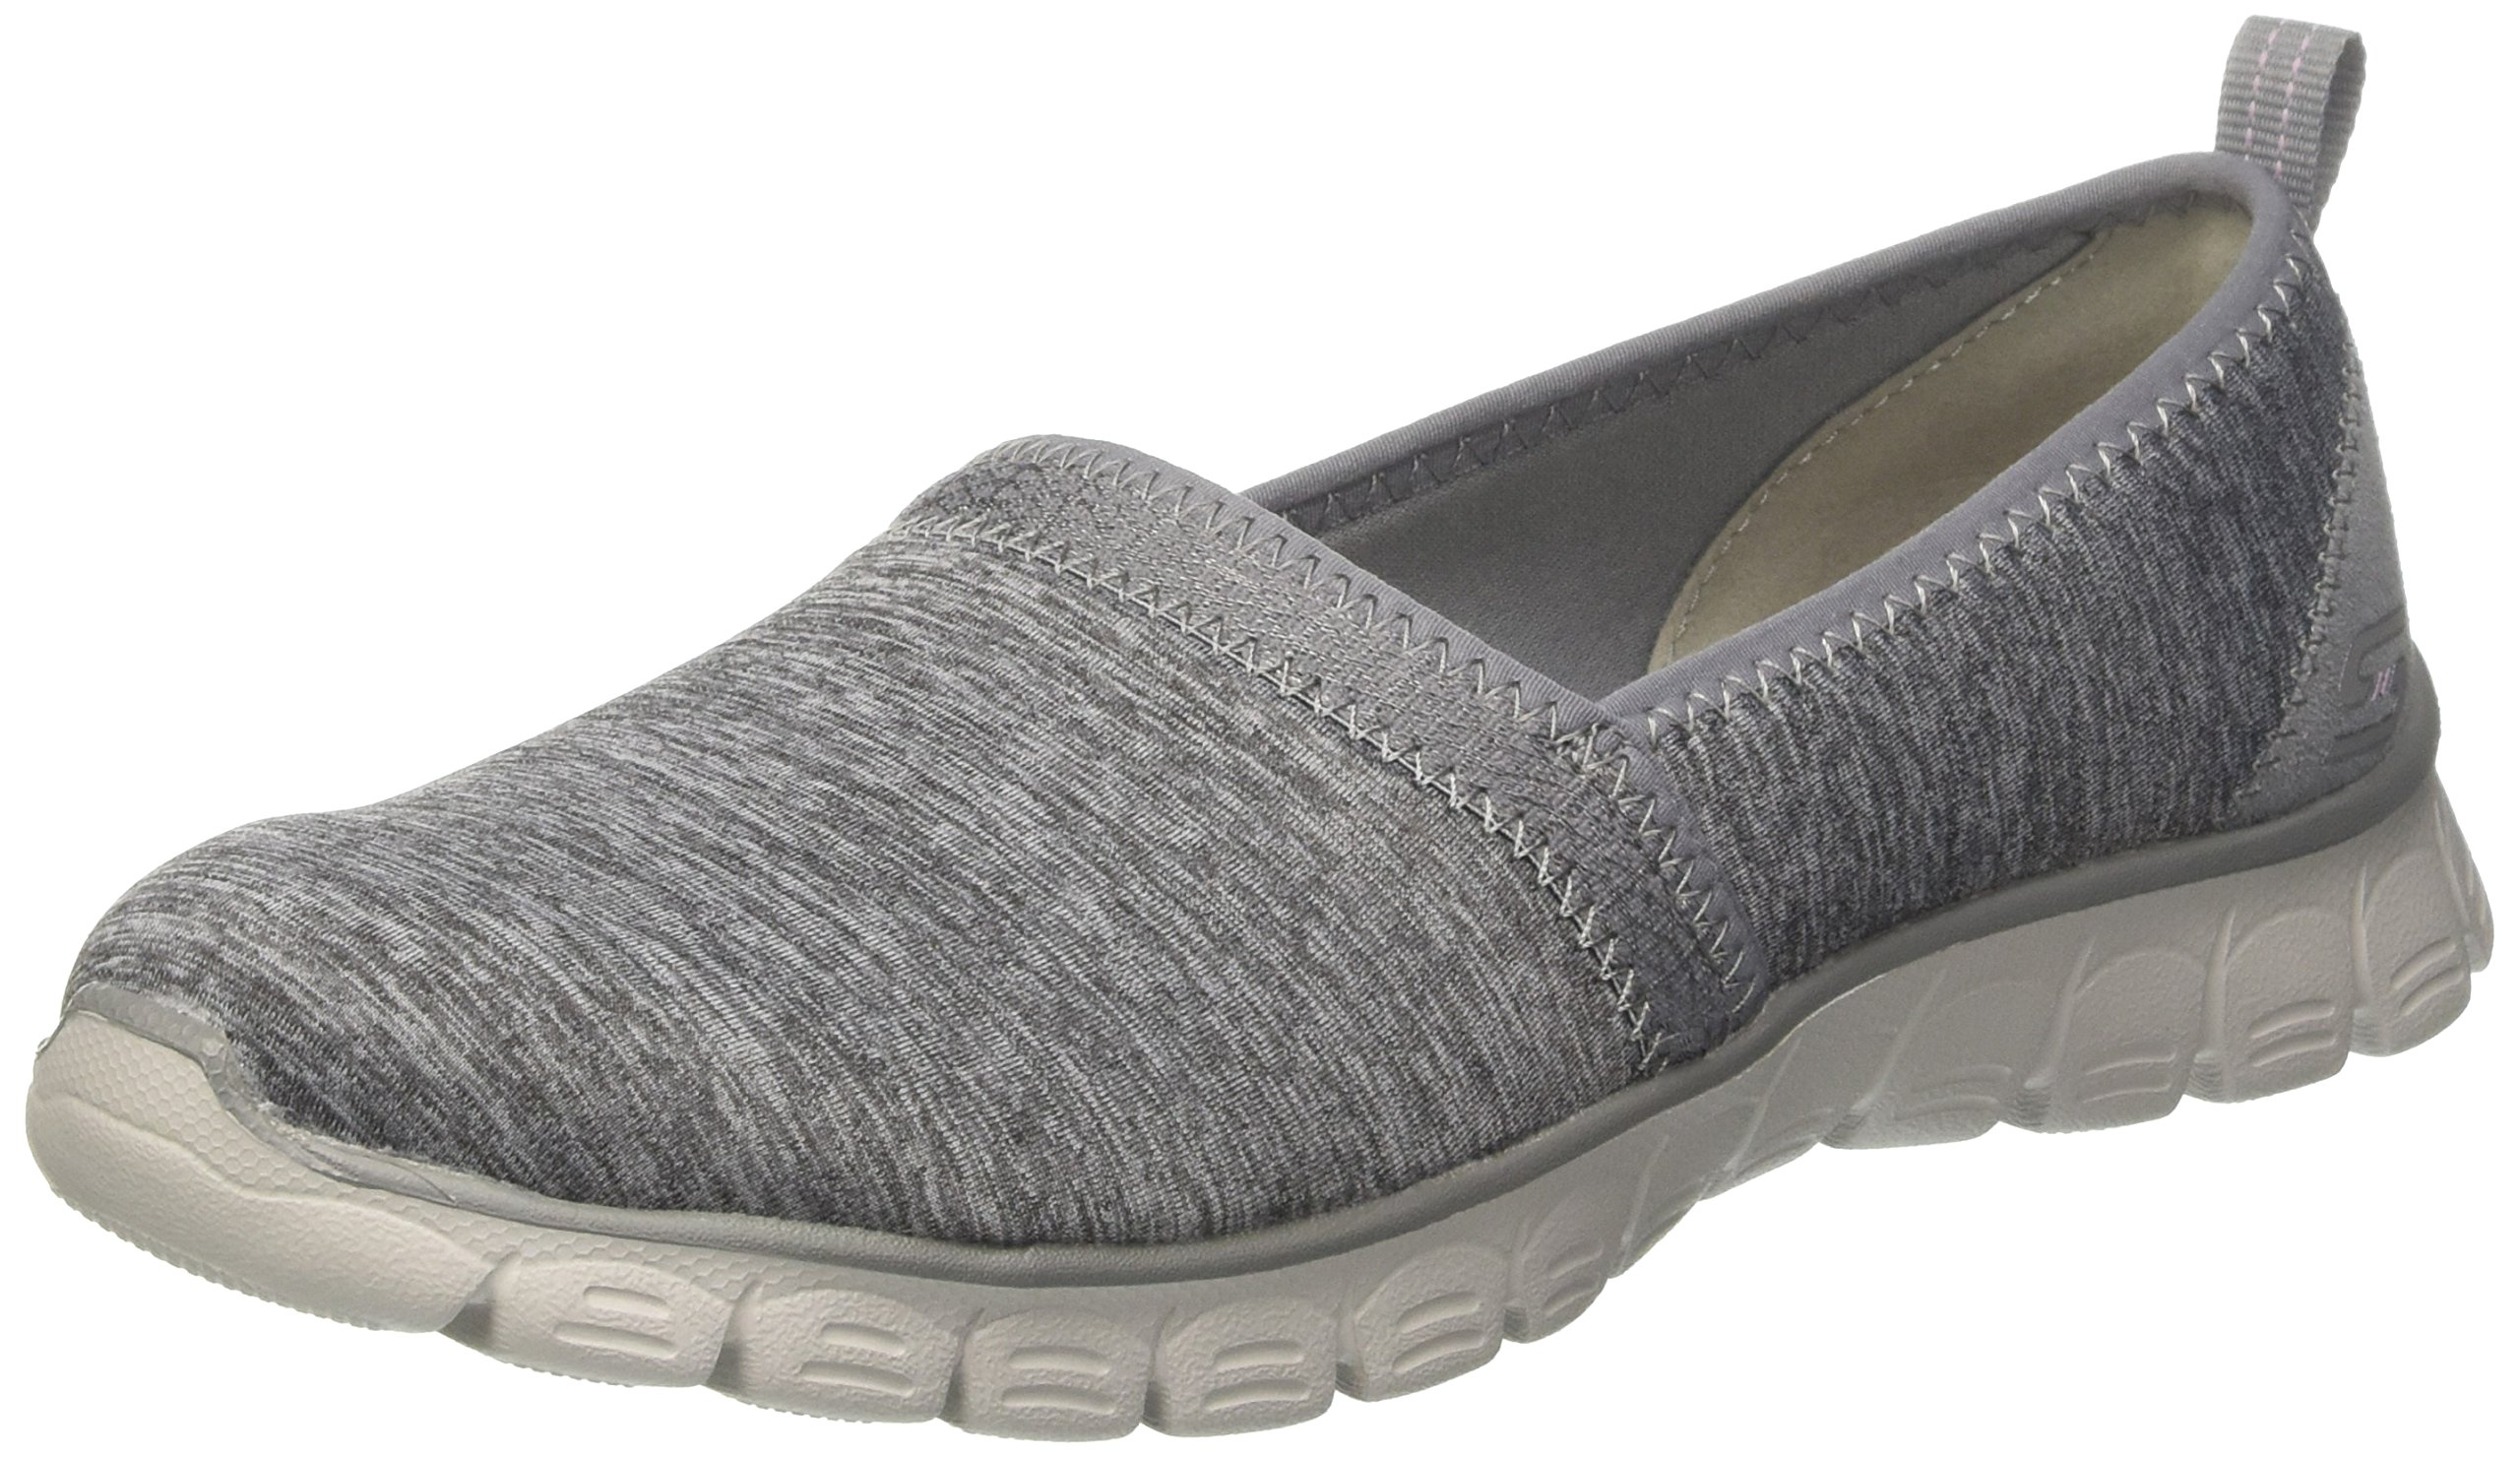 Skechers Women's, EZ Flex 3.0 Swift Motion Slip on Shoes Gray 9.5 M